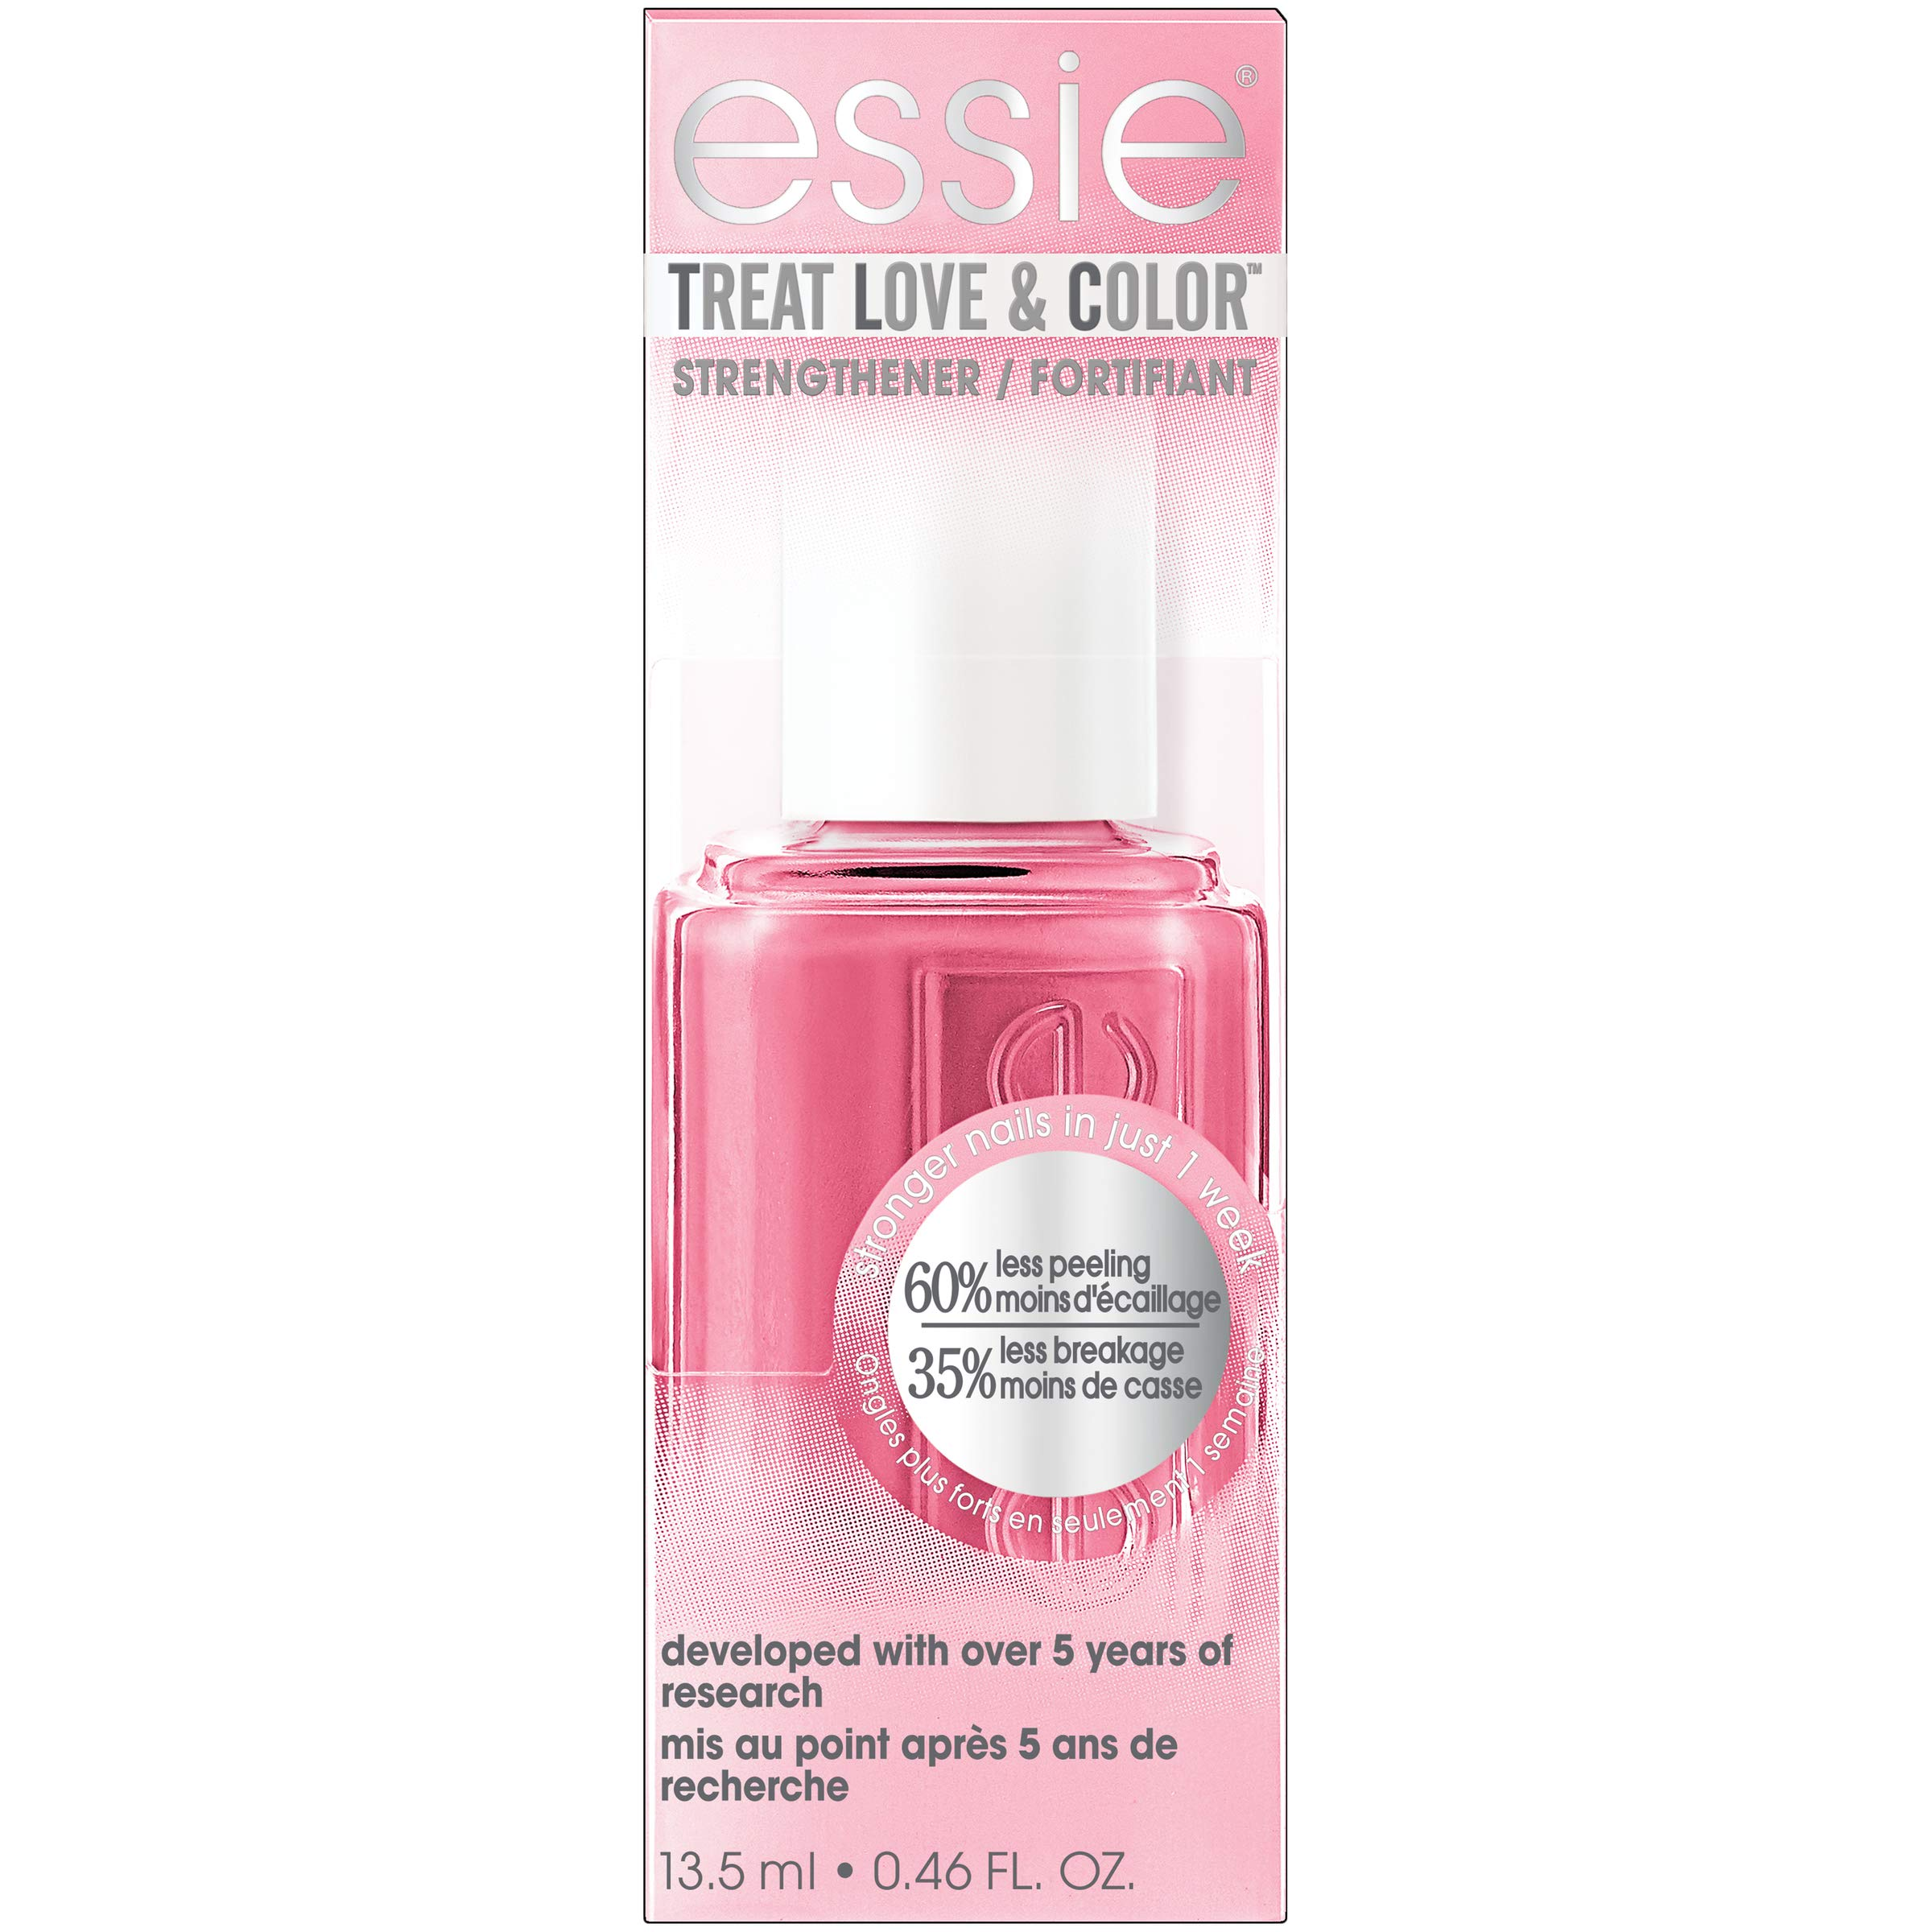 essie Treat Love & Color Nail Polish For Normal to Dry/Brittle Nails, A-Game, 0.46 fl. oz.